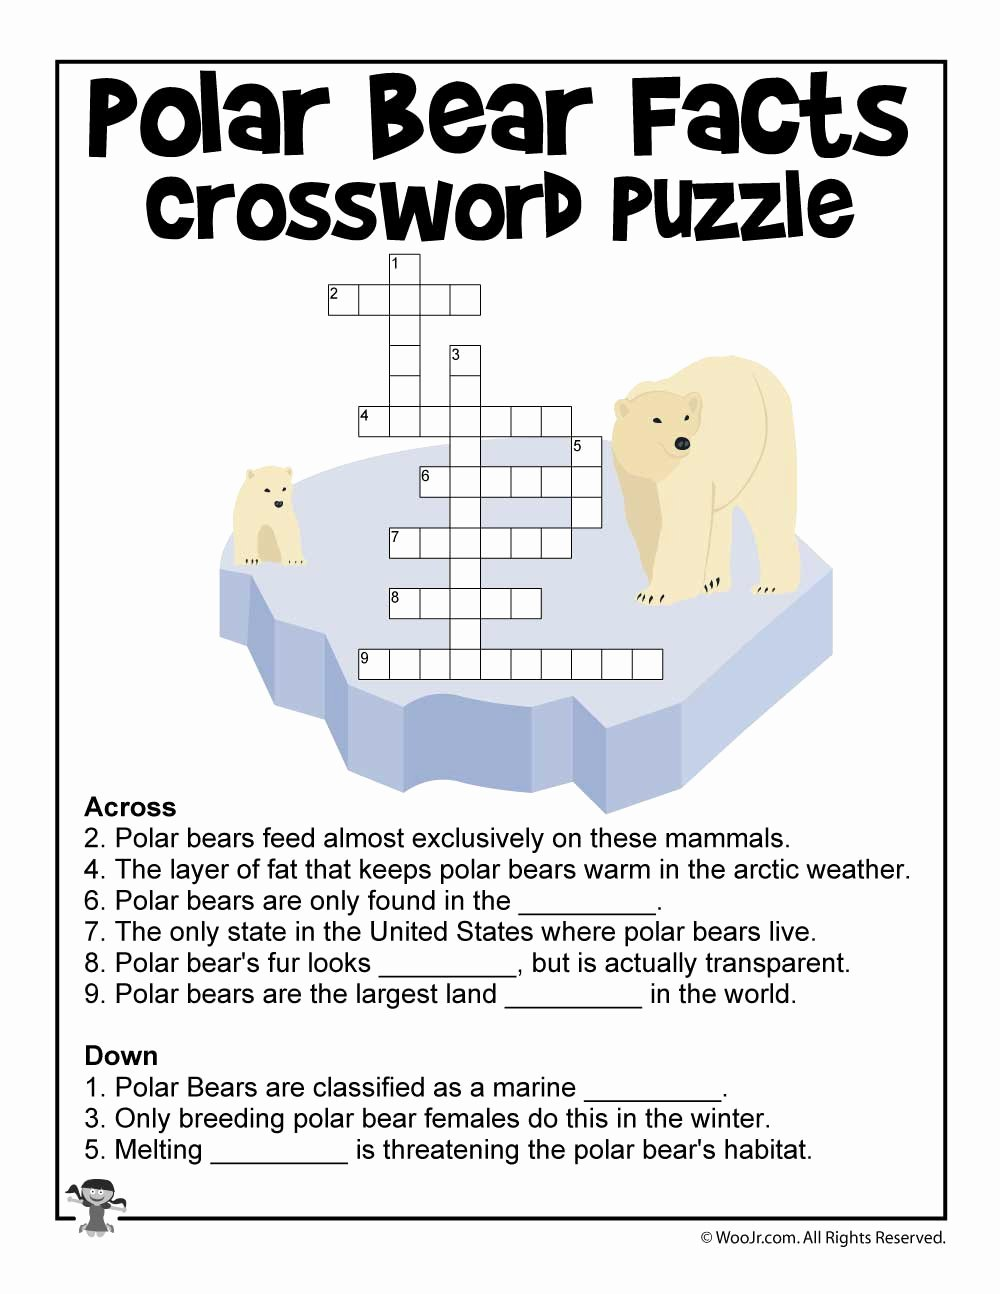 Polar Bear Worksheets for Preschoolers Kids Polar Bear Day Crossword Puzzle Worksheet